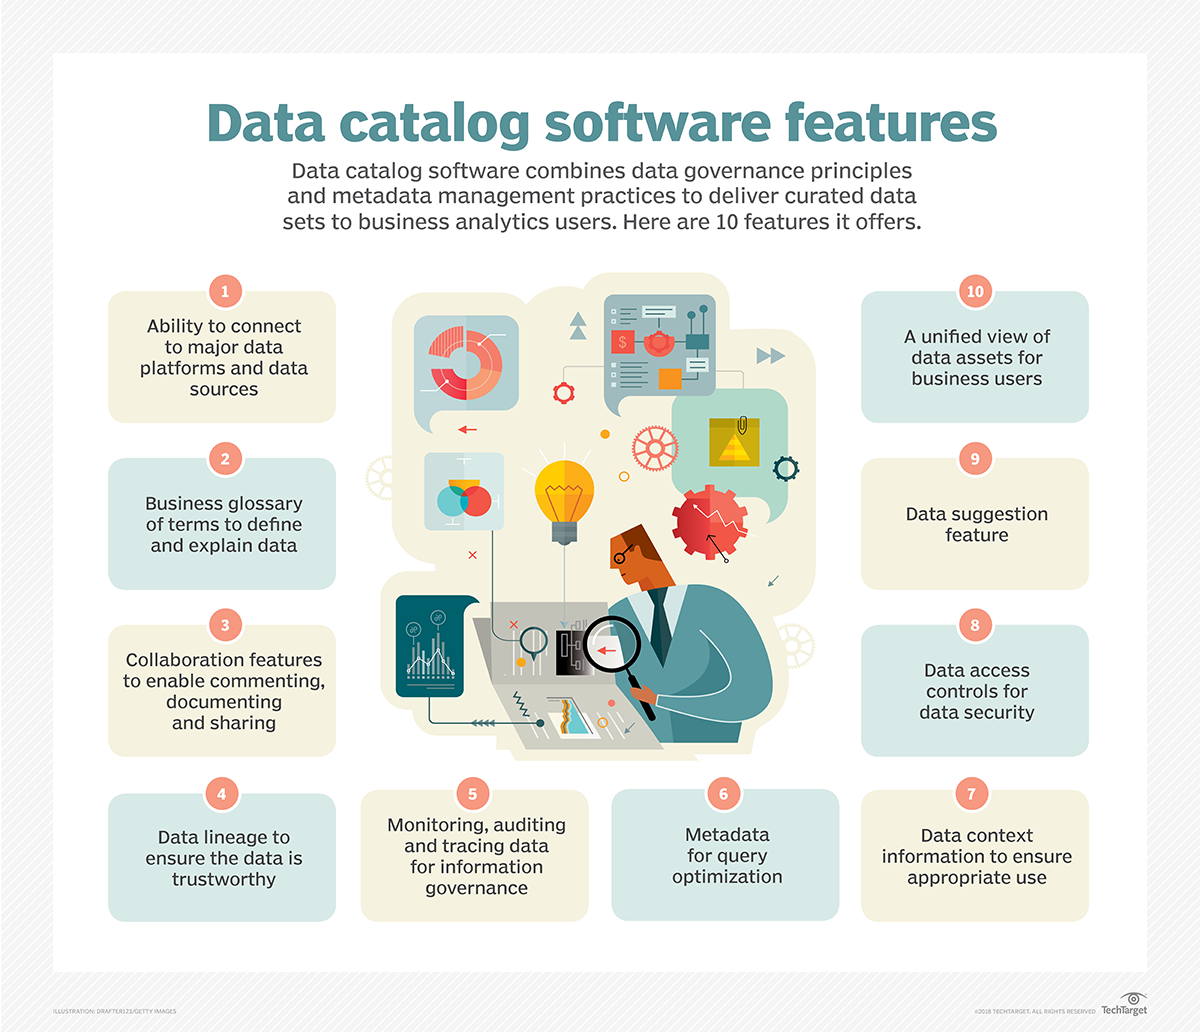 Data catalog software takes on data lakes, privacy laws